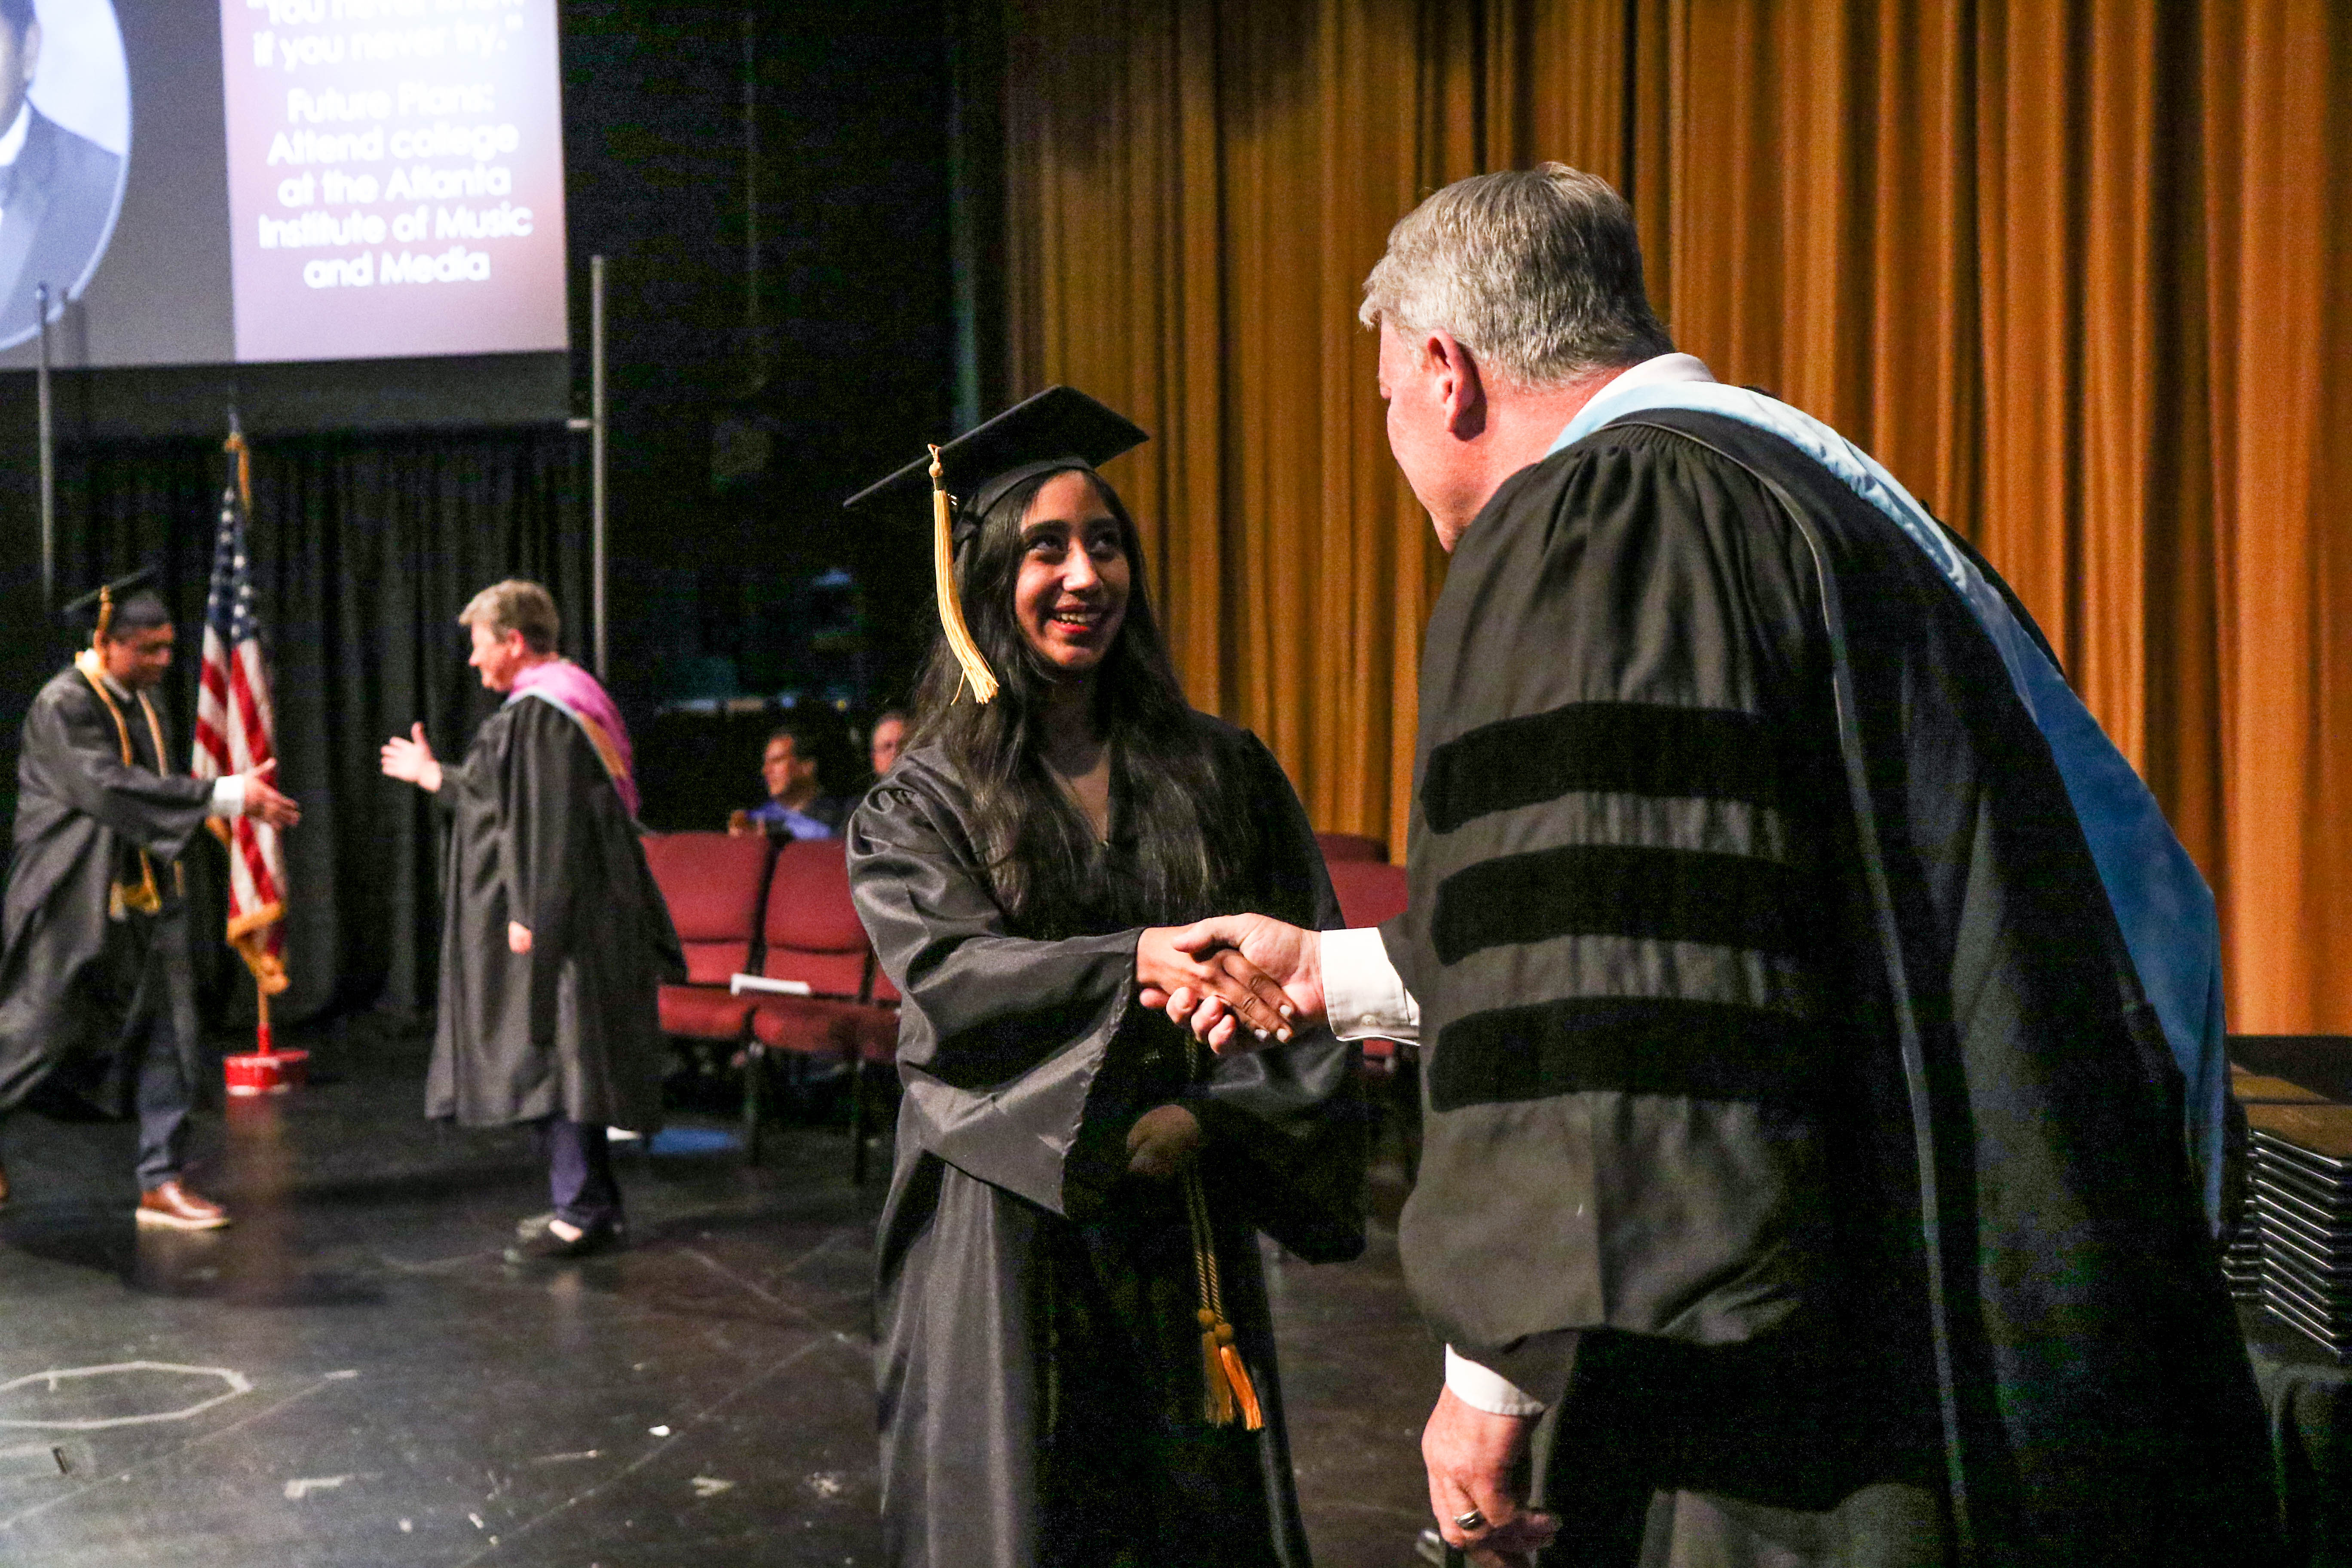 Dr. Scott shaking hands with graduate